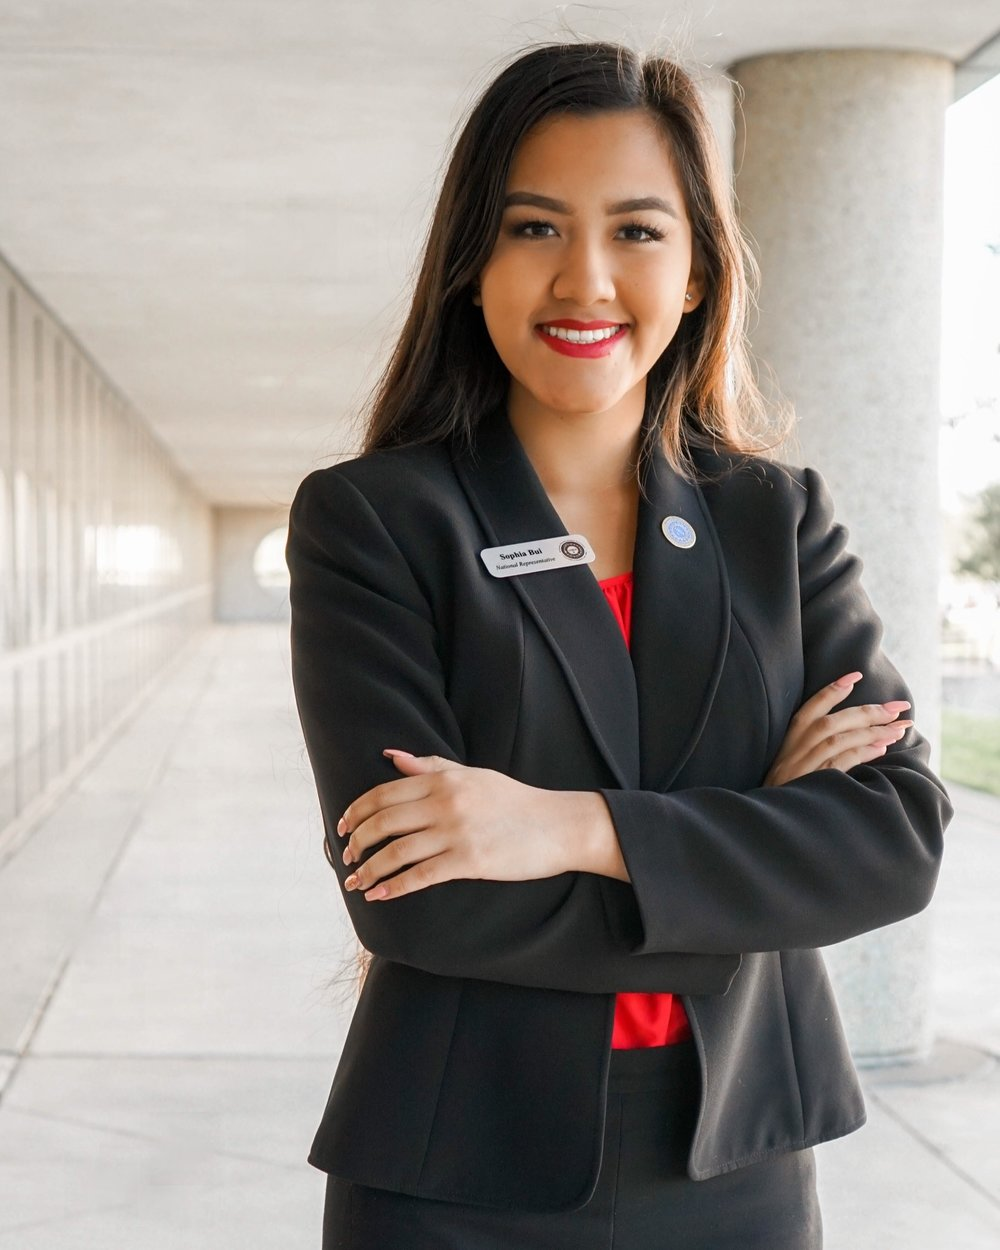 Sophia Bui- Connect with me on LinkedIn!